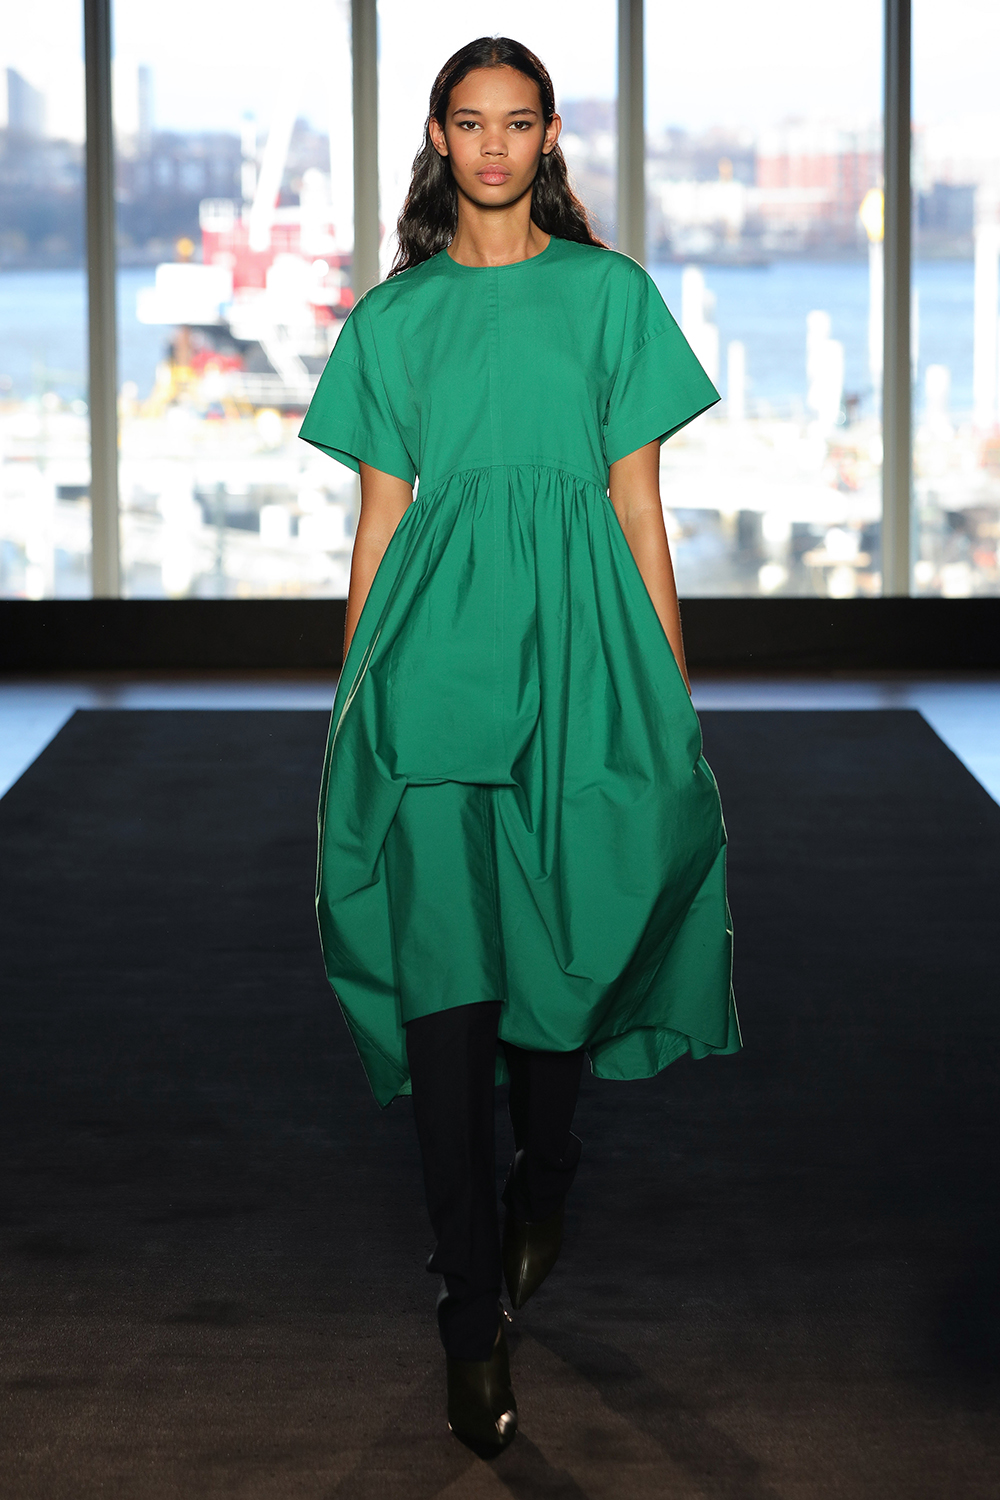 Look 11 Emerald cotton ivy dress with dark teal wool twill pant.